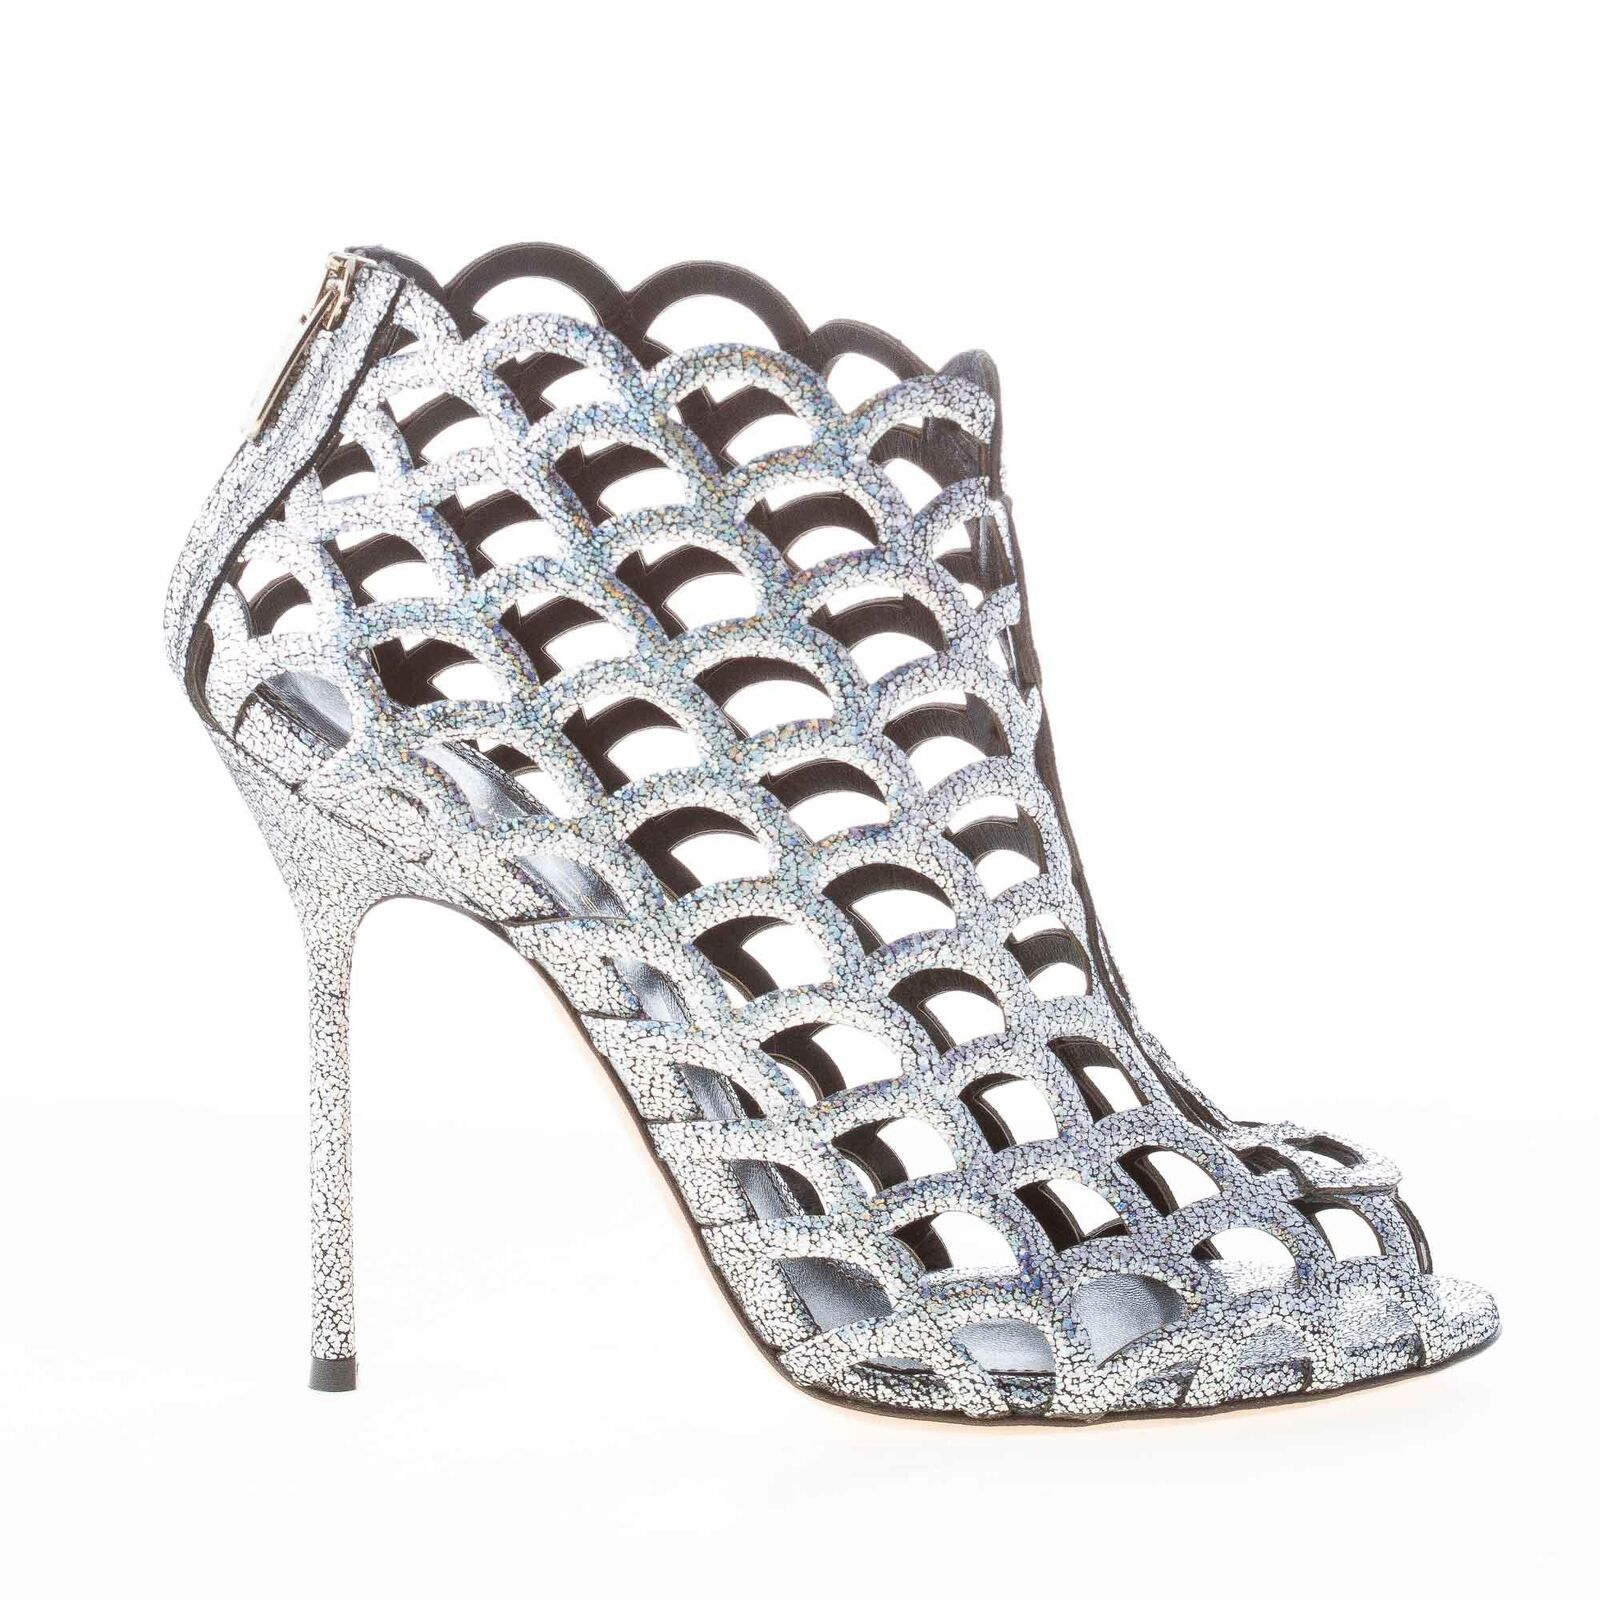 SERGIO ROSSI women shoes Mermaid silver glittered leather ankle ankle leather boot zip A59980 a63fe4